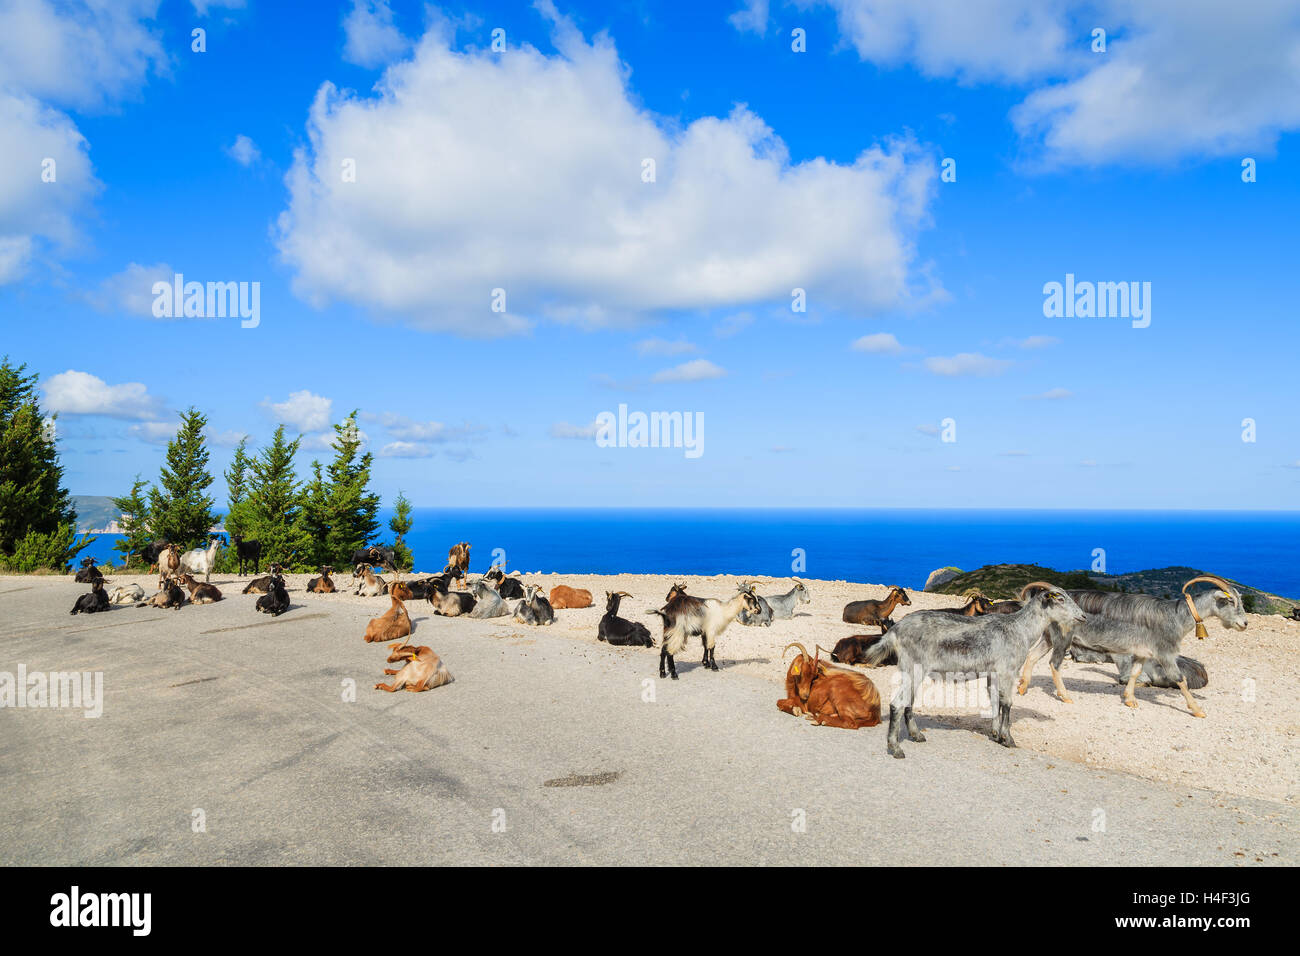 Goats with horns on scenic mountain road to Assos village against blue sea background, Kefalonia island, Greece - Stock Image